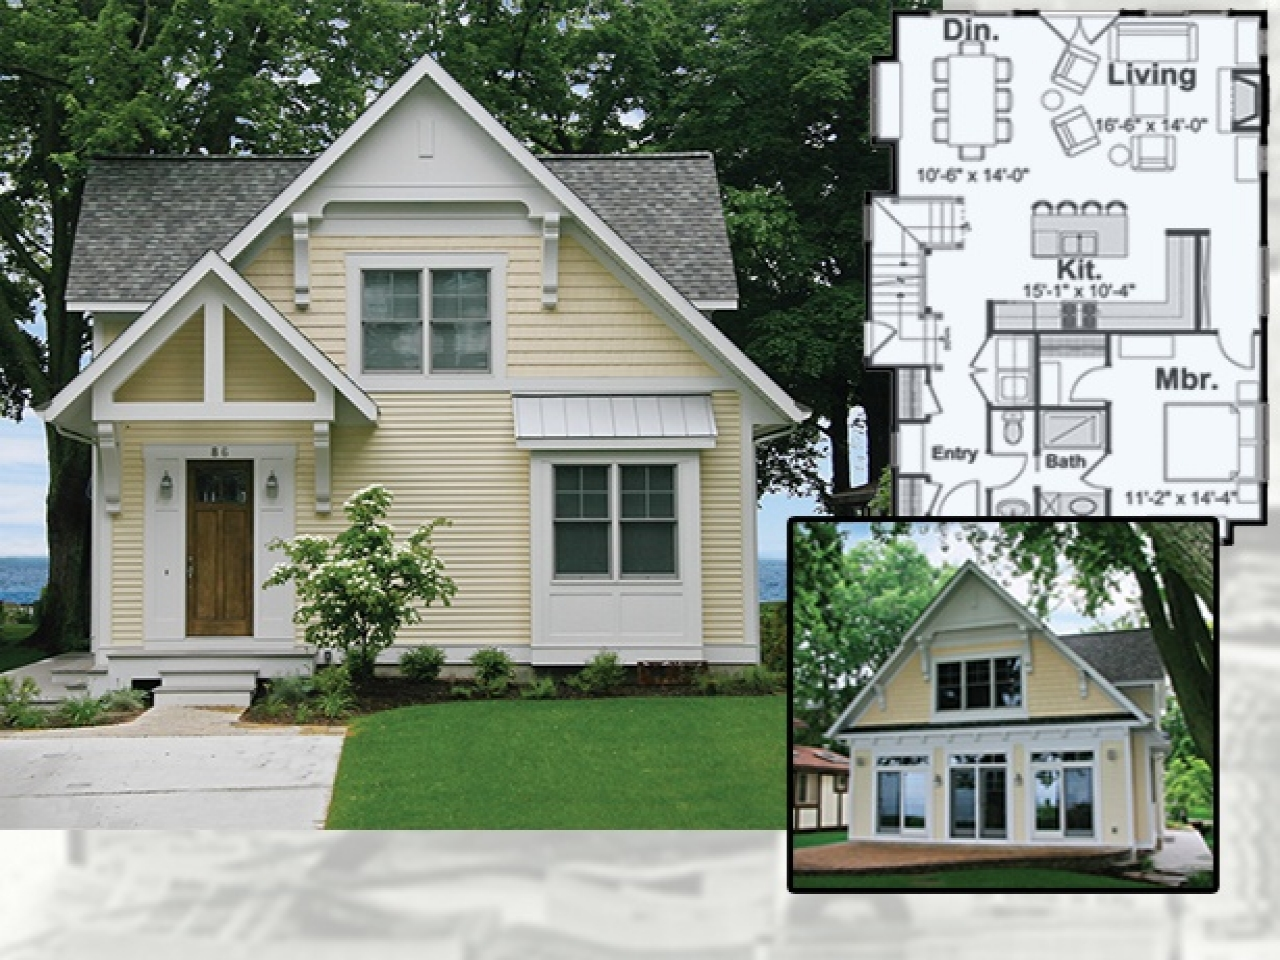 Tiny House Floor Plans Small Cabins Tiny Houses Small: Small Victorian Cottage Jamestown RI Small Victorian